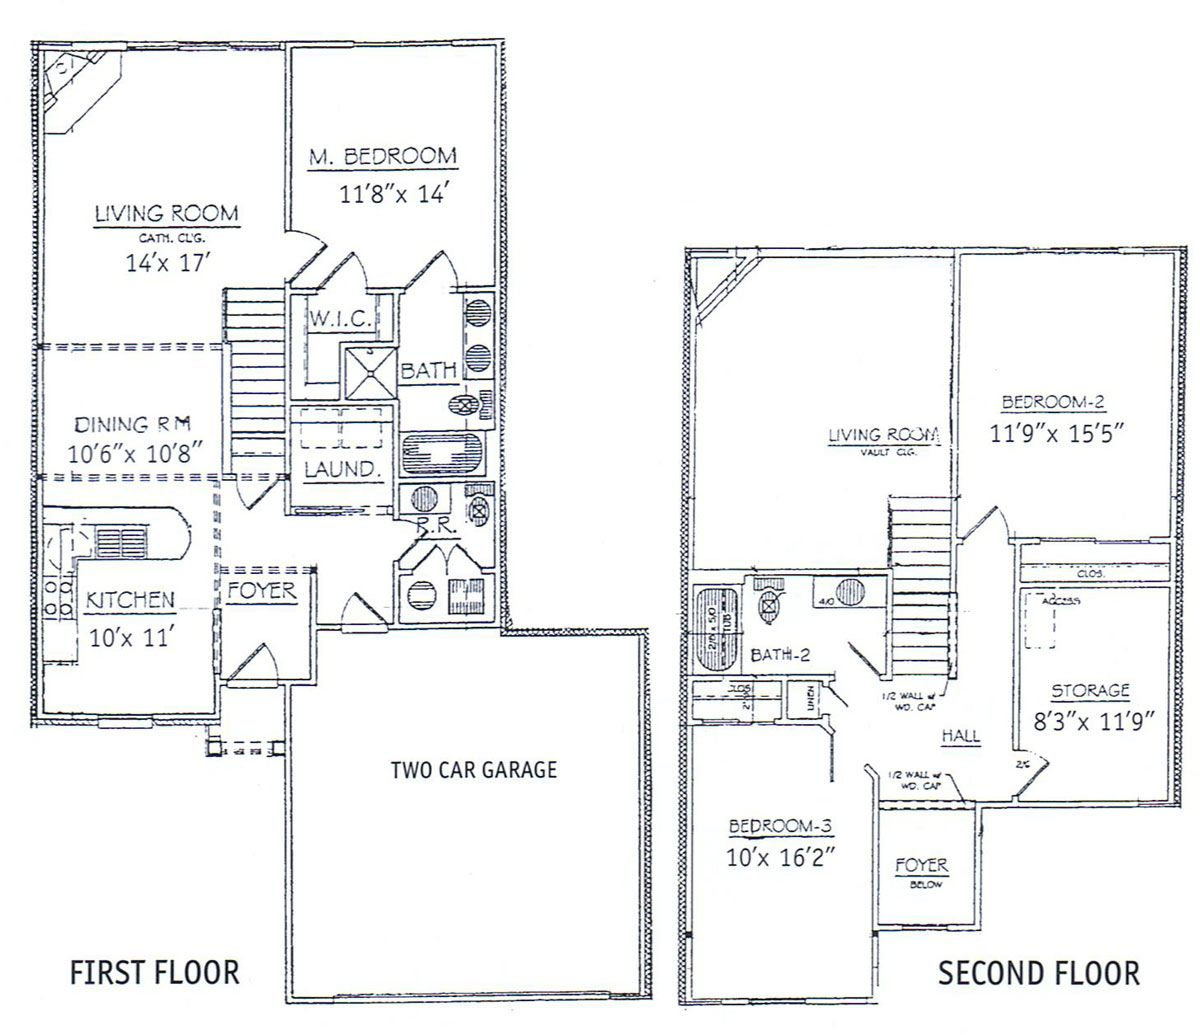 3 bedrooms floor plans 2 story bdrm basement the two for 2 story 4 bedroom 3 bath house plans